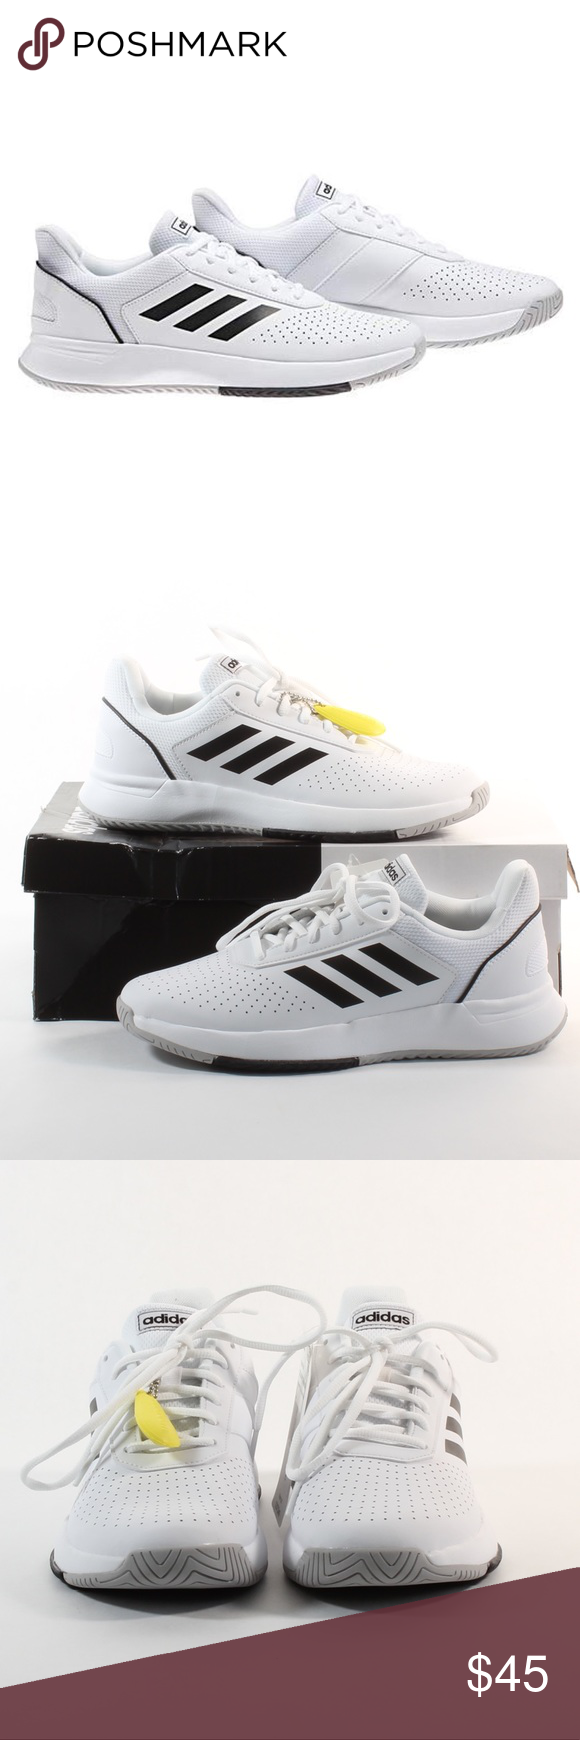 Men S Adidas Courtsmash Tennis Shoes White New Nwt Tennis Shoes Sporty Style Shoes